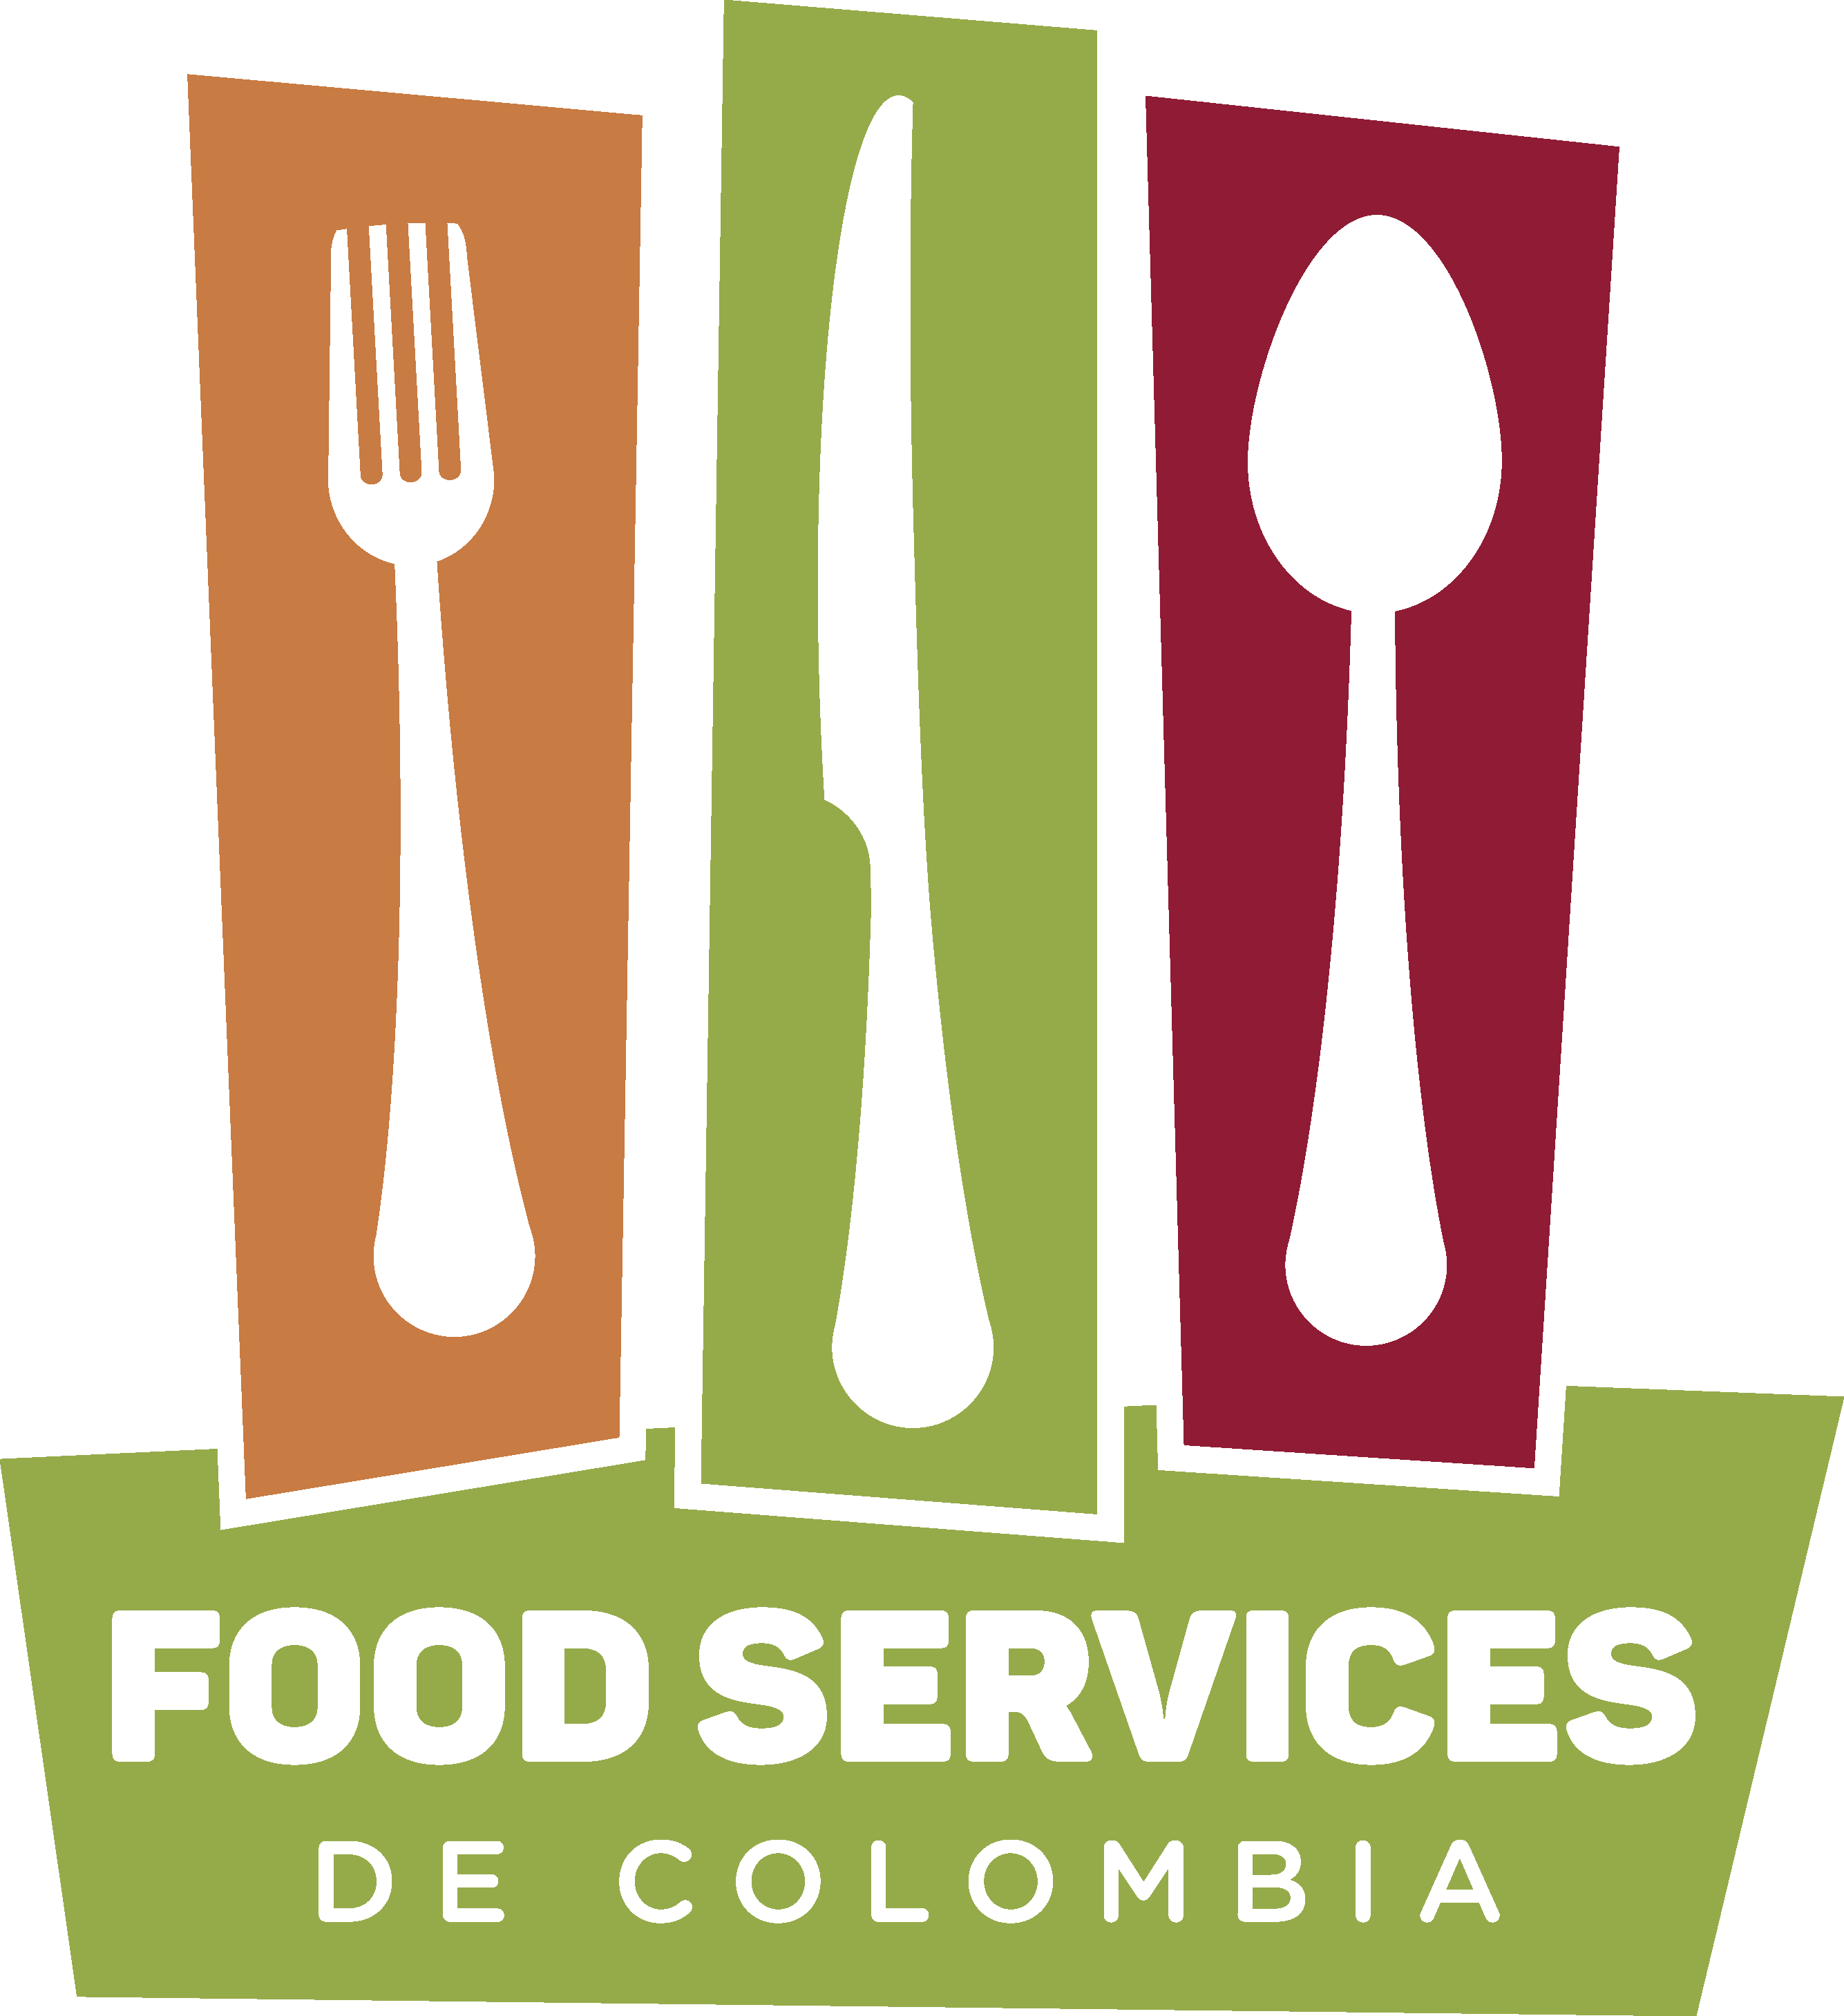 Food services de colombia